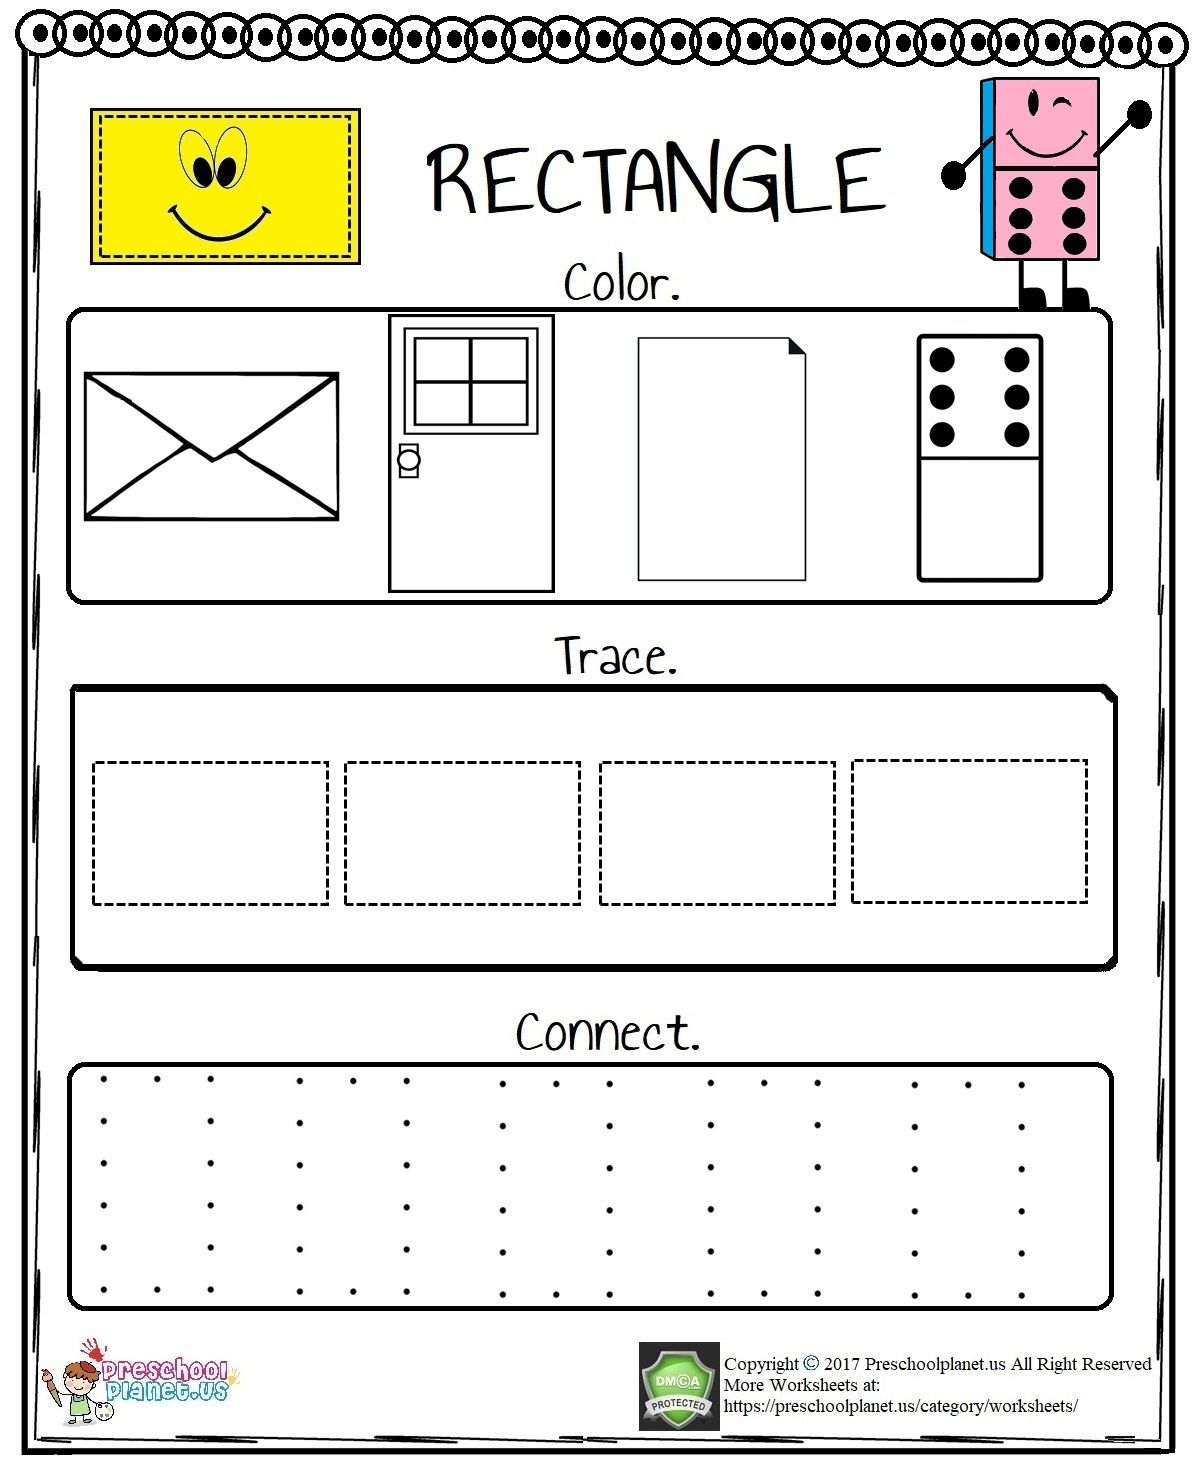 Do You Want To Teach And Practice Rectangle To Your